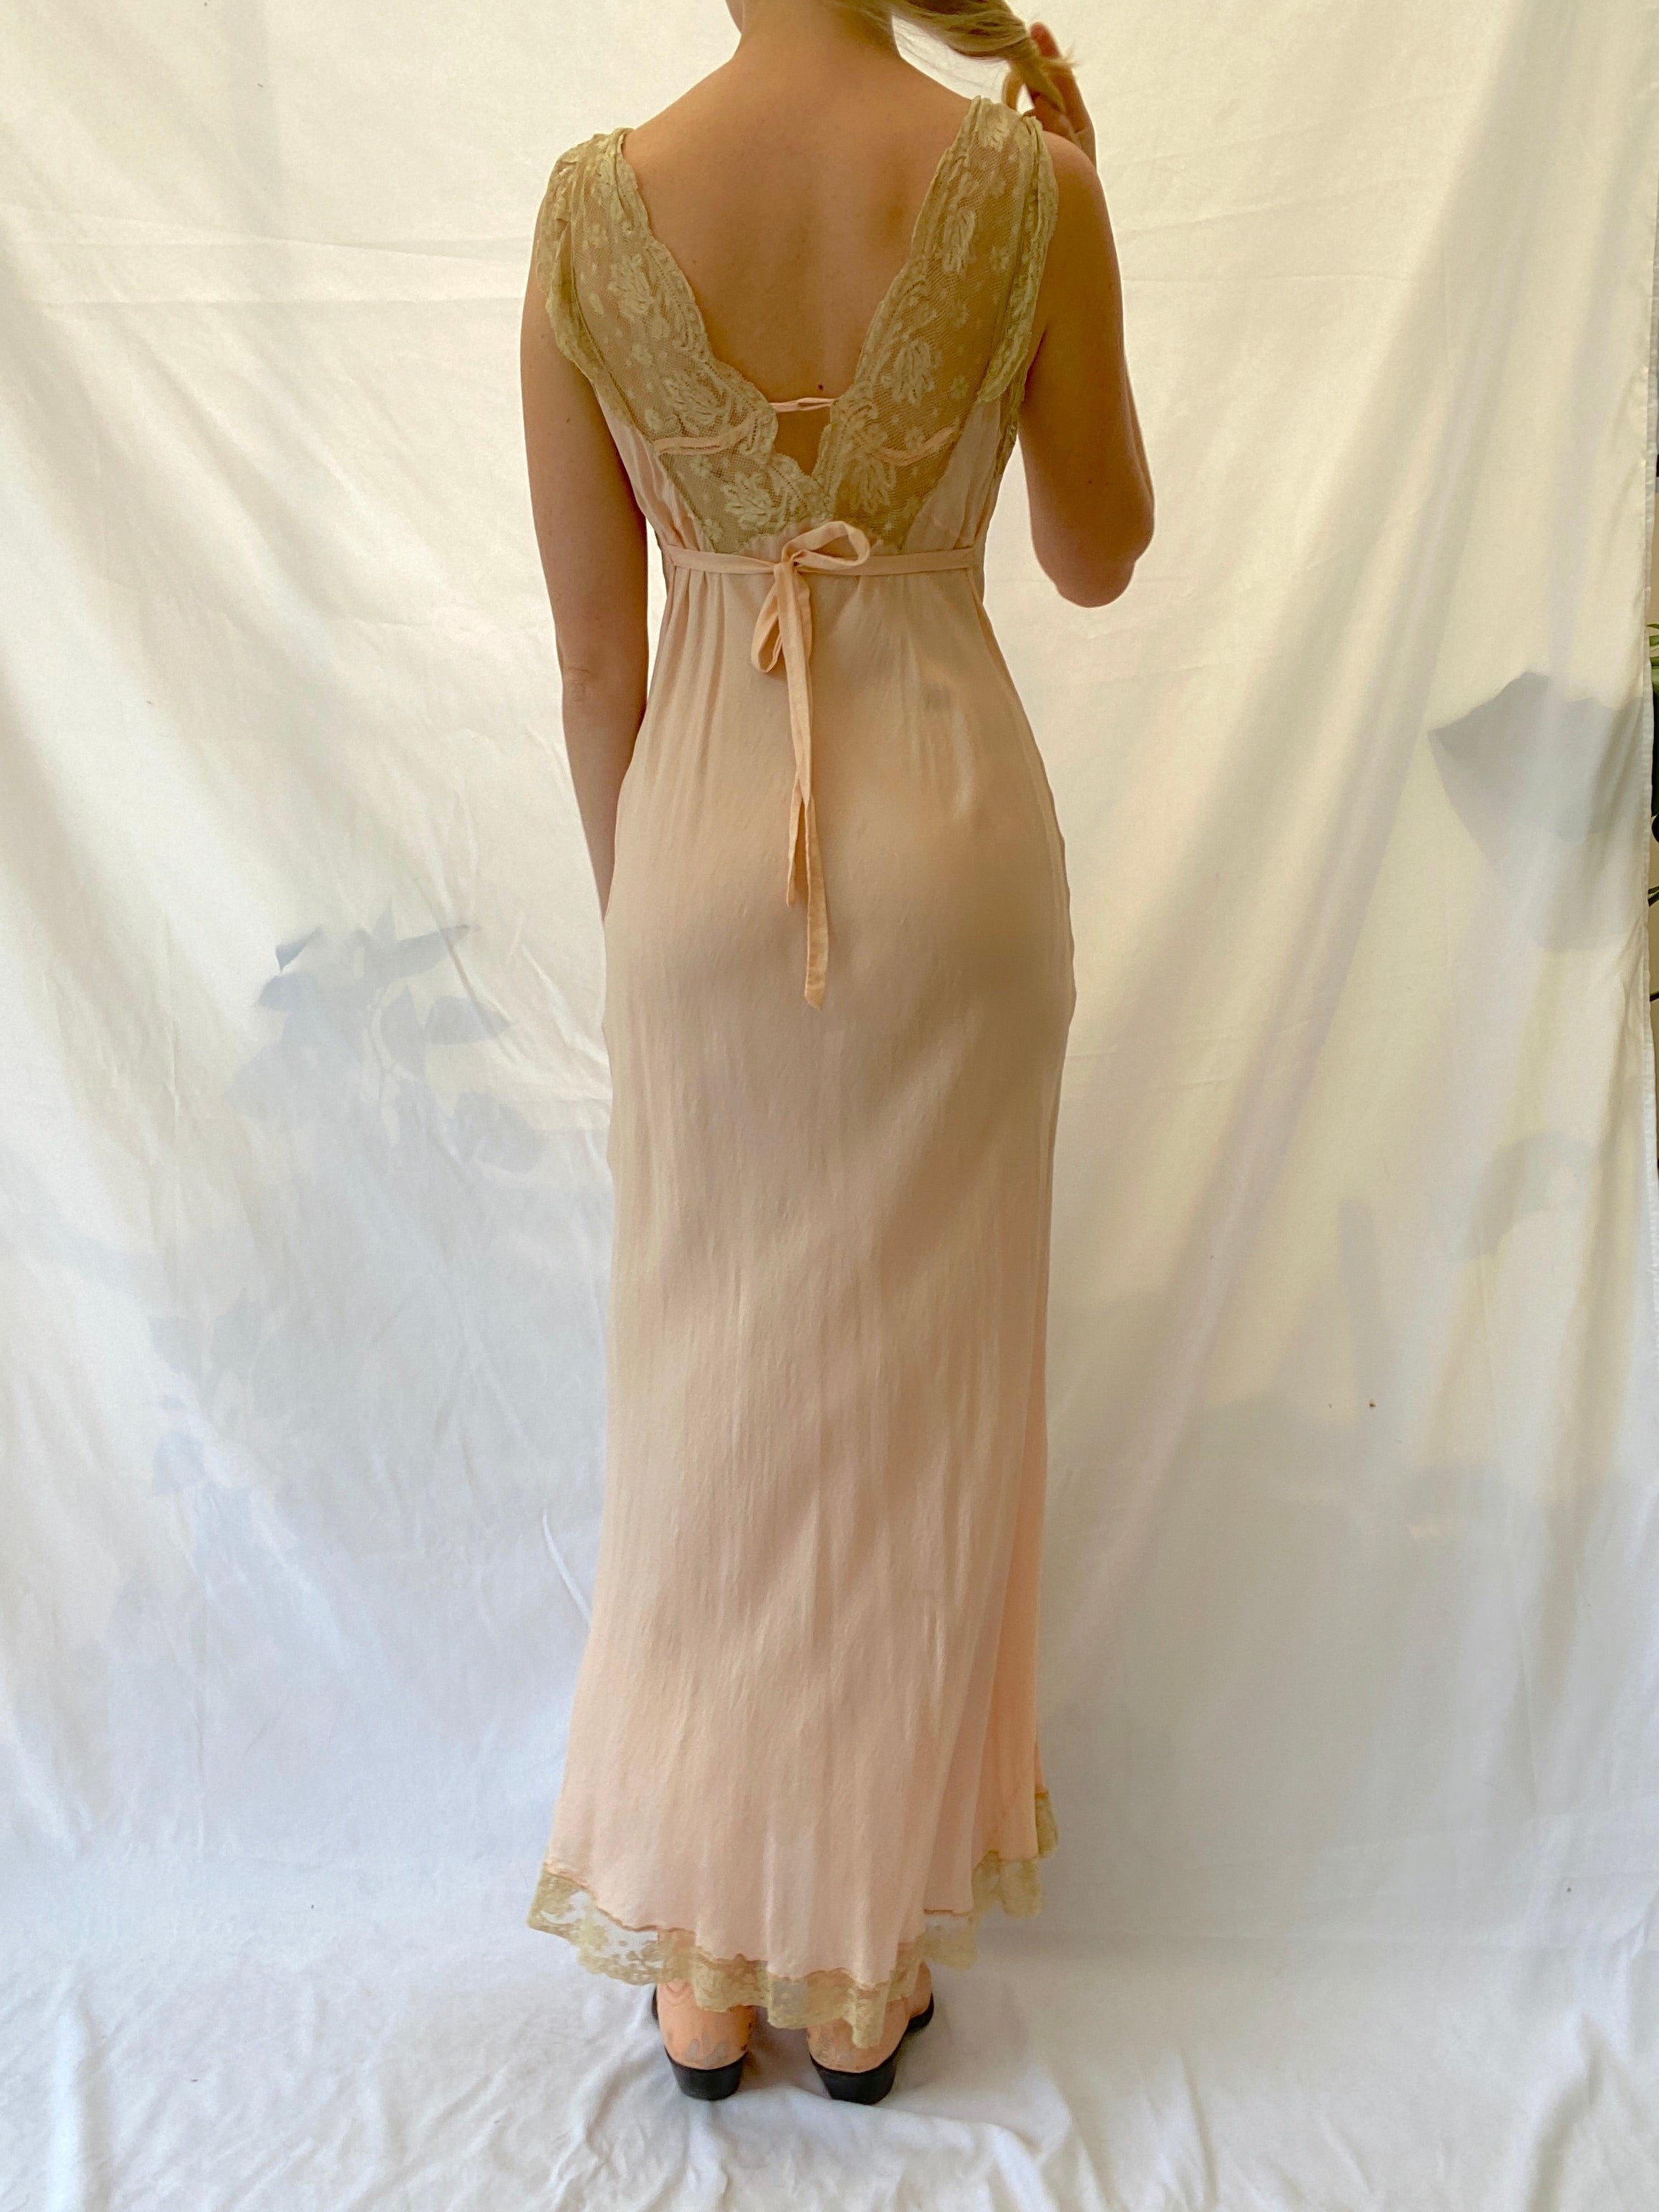 Pale Pink Slip with Cream Lace